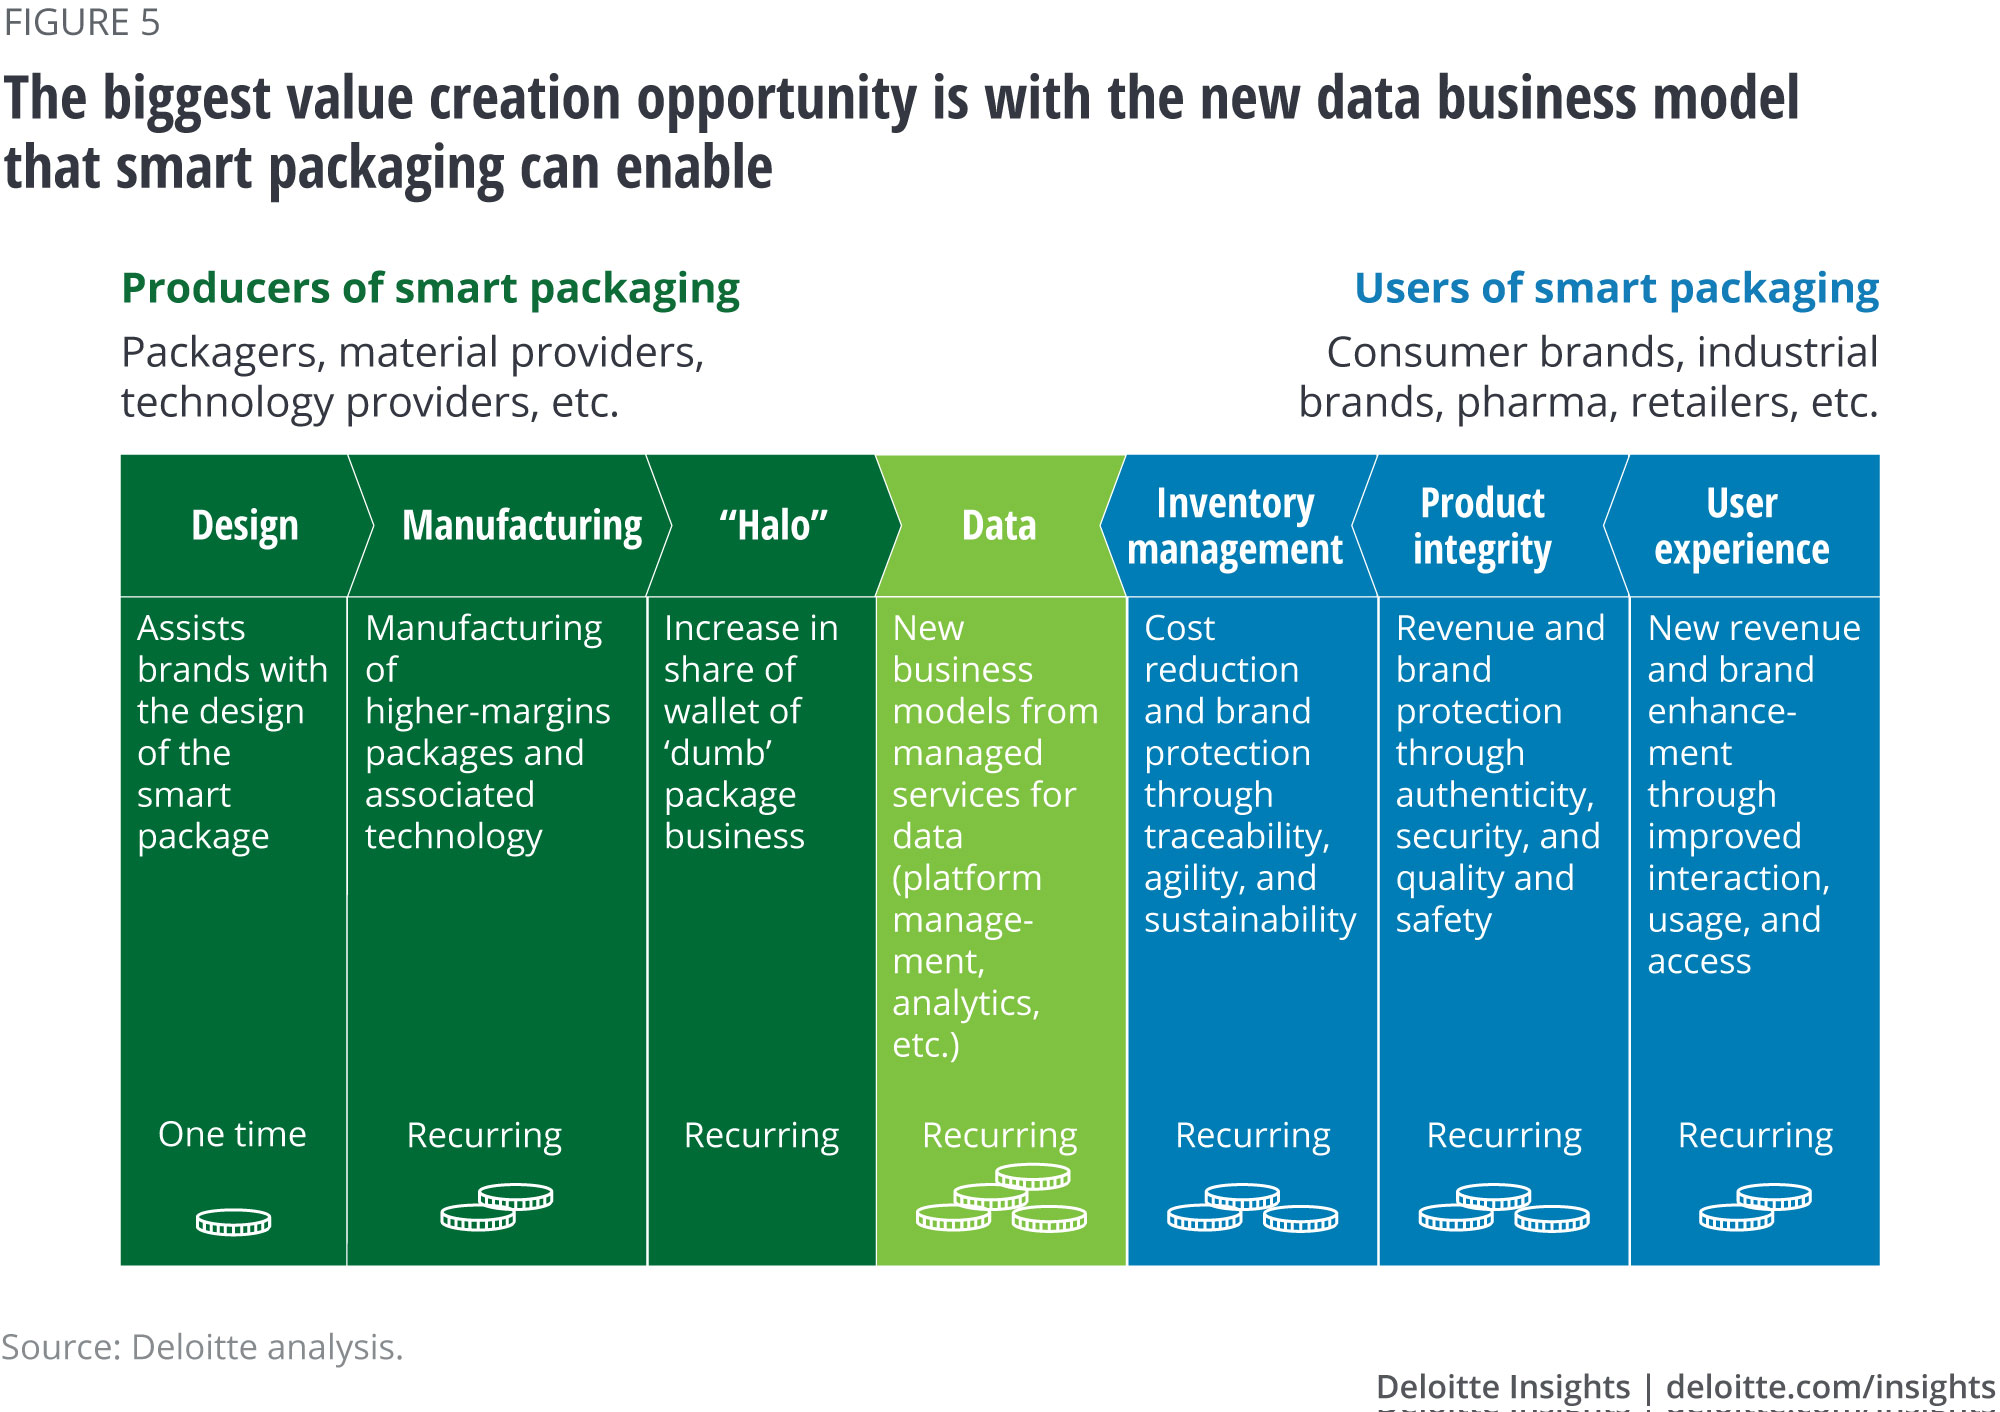 The biggest value creation opportunity is with the new data business model that smart packaging can enable